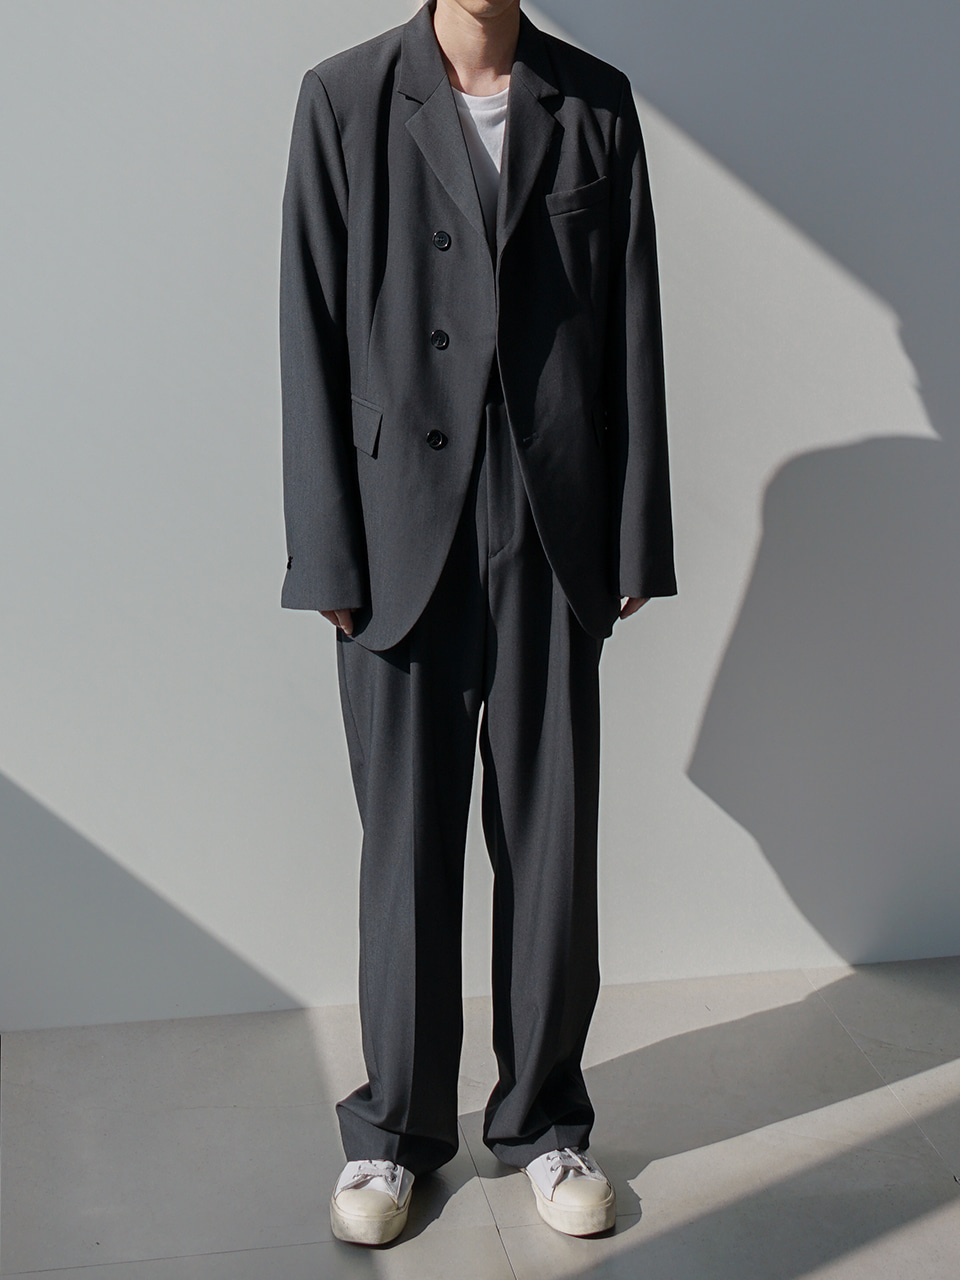 Low Unbalanced Suit Gray